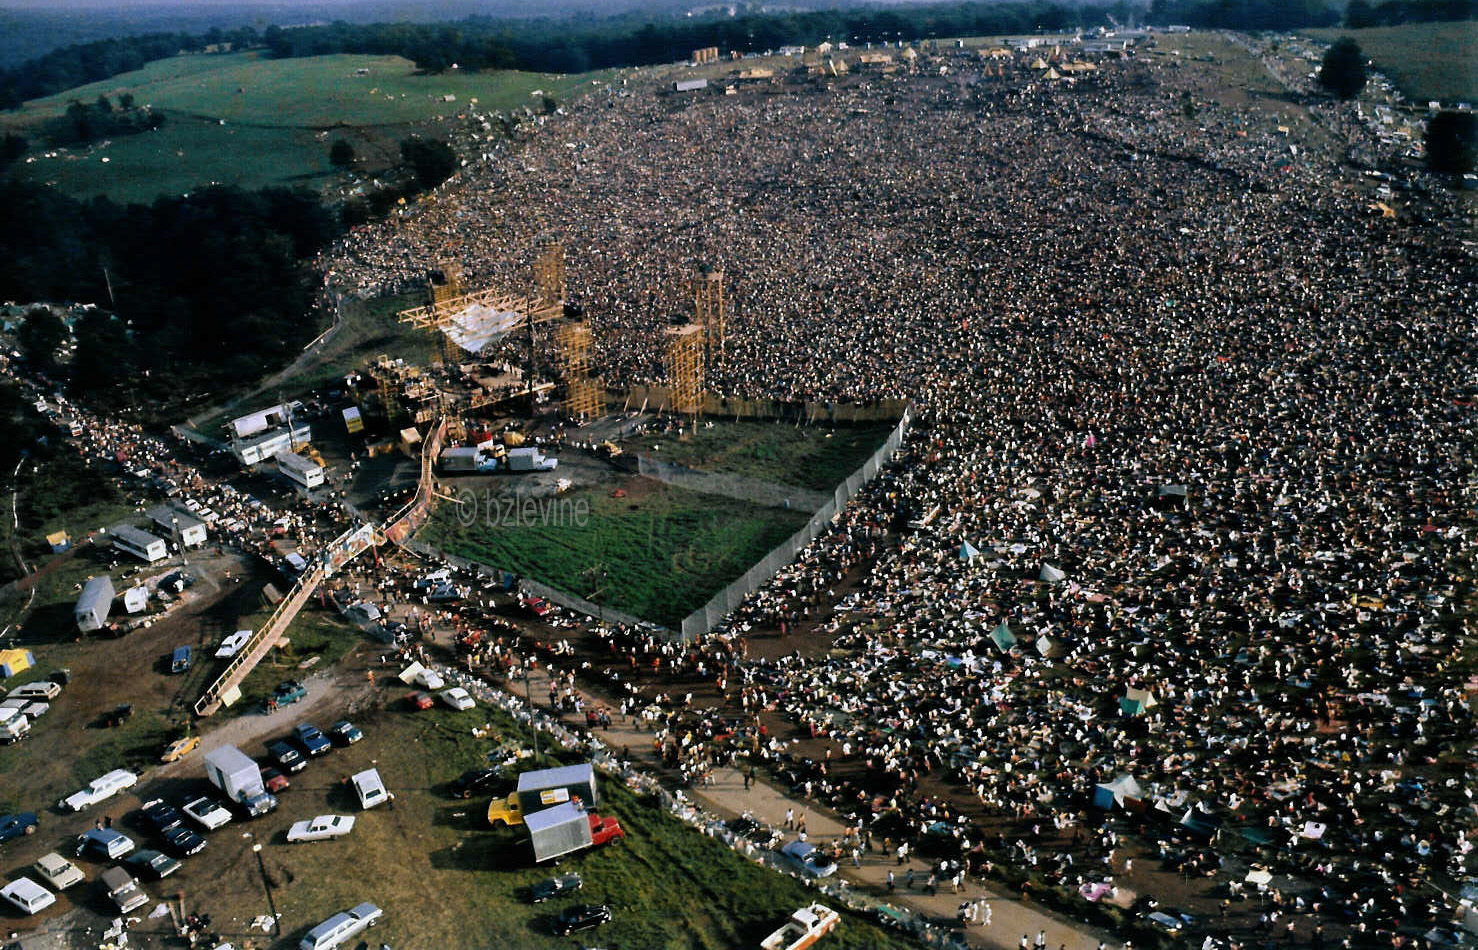 Co-founder Of Woodstock Teams Up With SFX For Massive New Festival | Your EDM